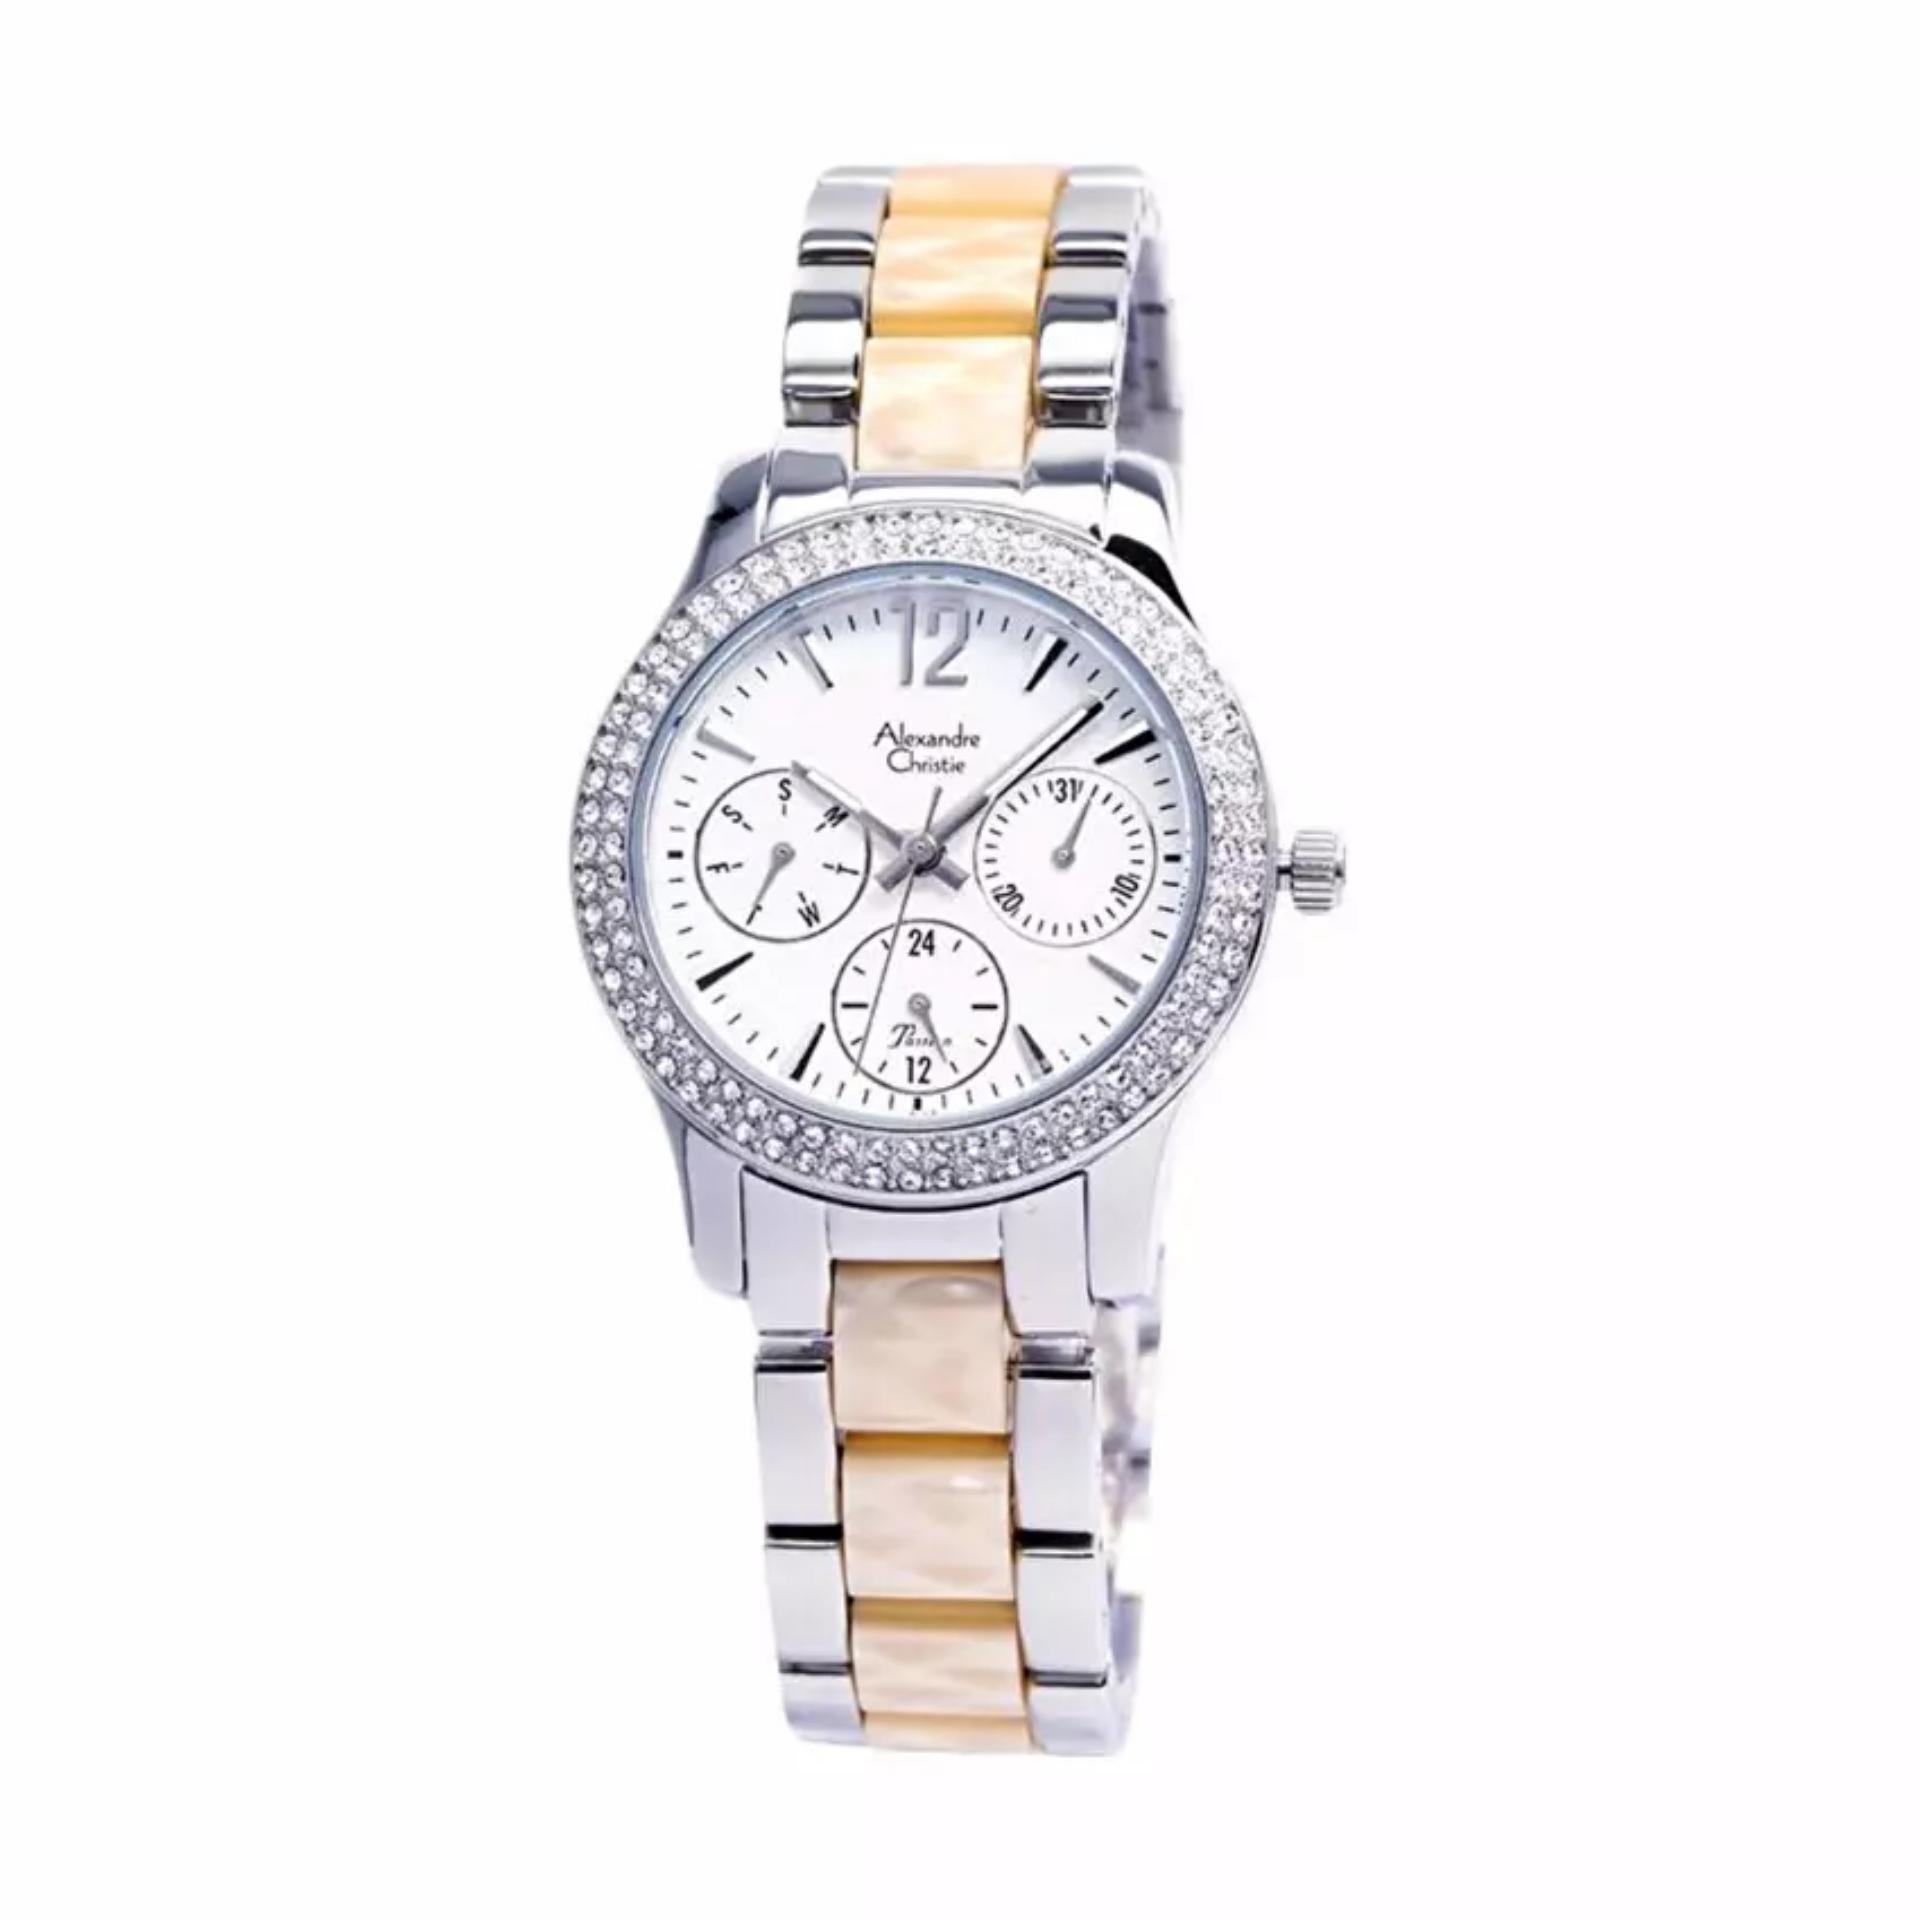 Indonesia Review Alexandre Christie Ac 2608 Jam Tangan Wanita 6442 Couple Rose Gold Black Fashion Silver Cream